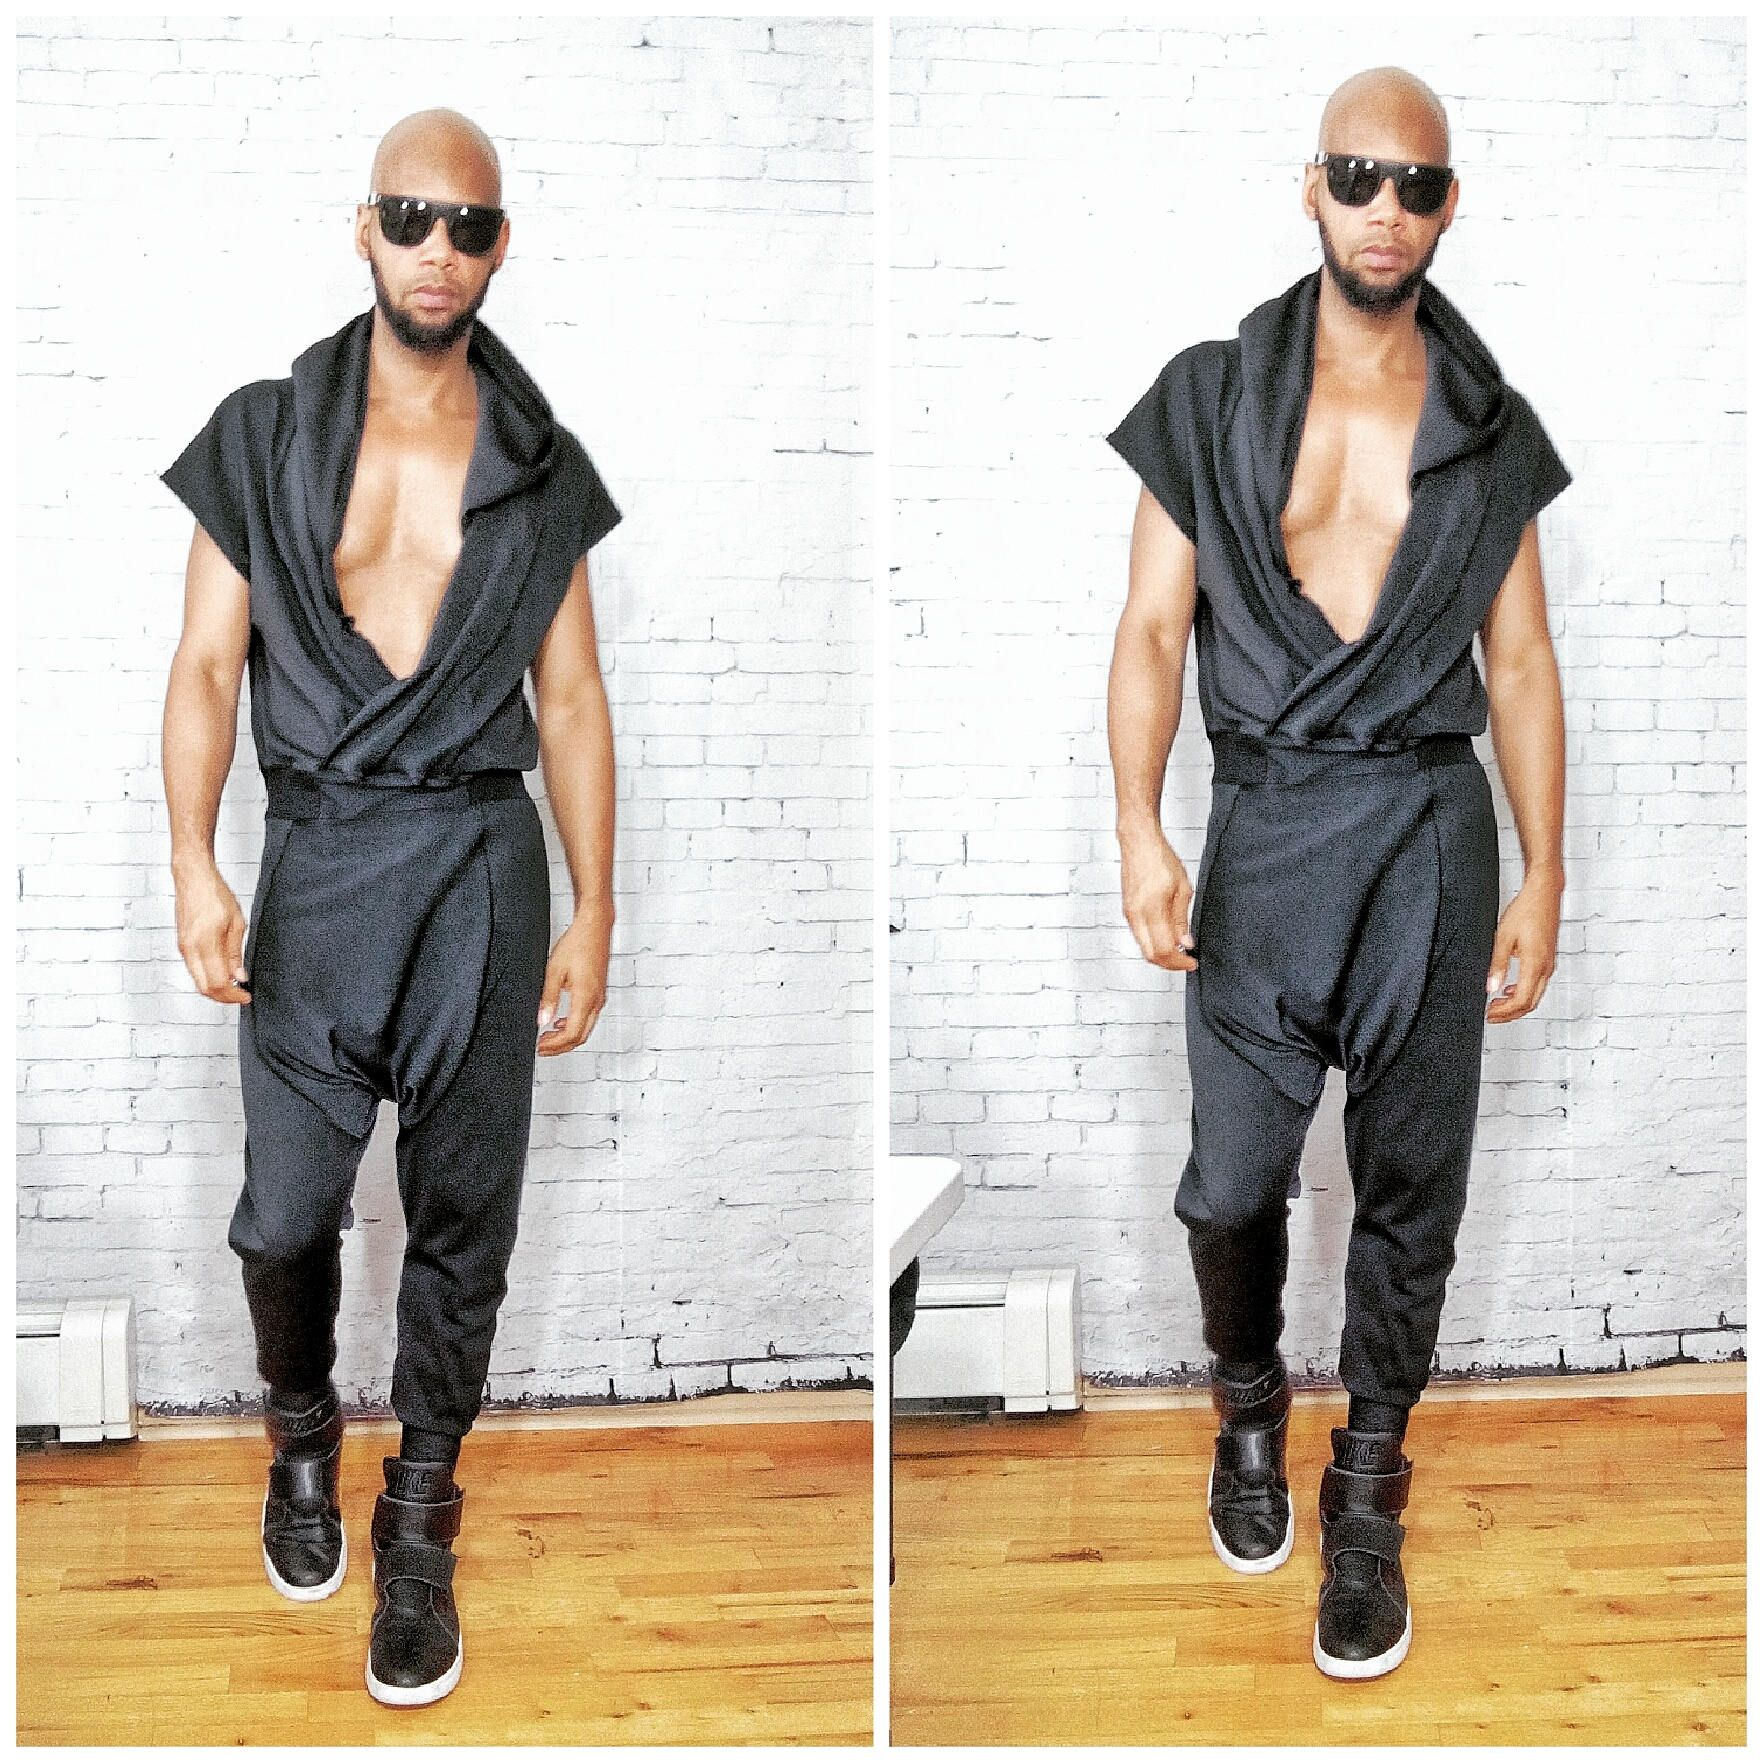 Draped Cowl Neck Harem Pant Woven One piece Sleeveless Back Zip jumpSuit Color - Grey Inspired By- ysl westwood rick owens romper romphim lmEenuNu